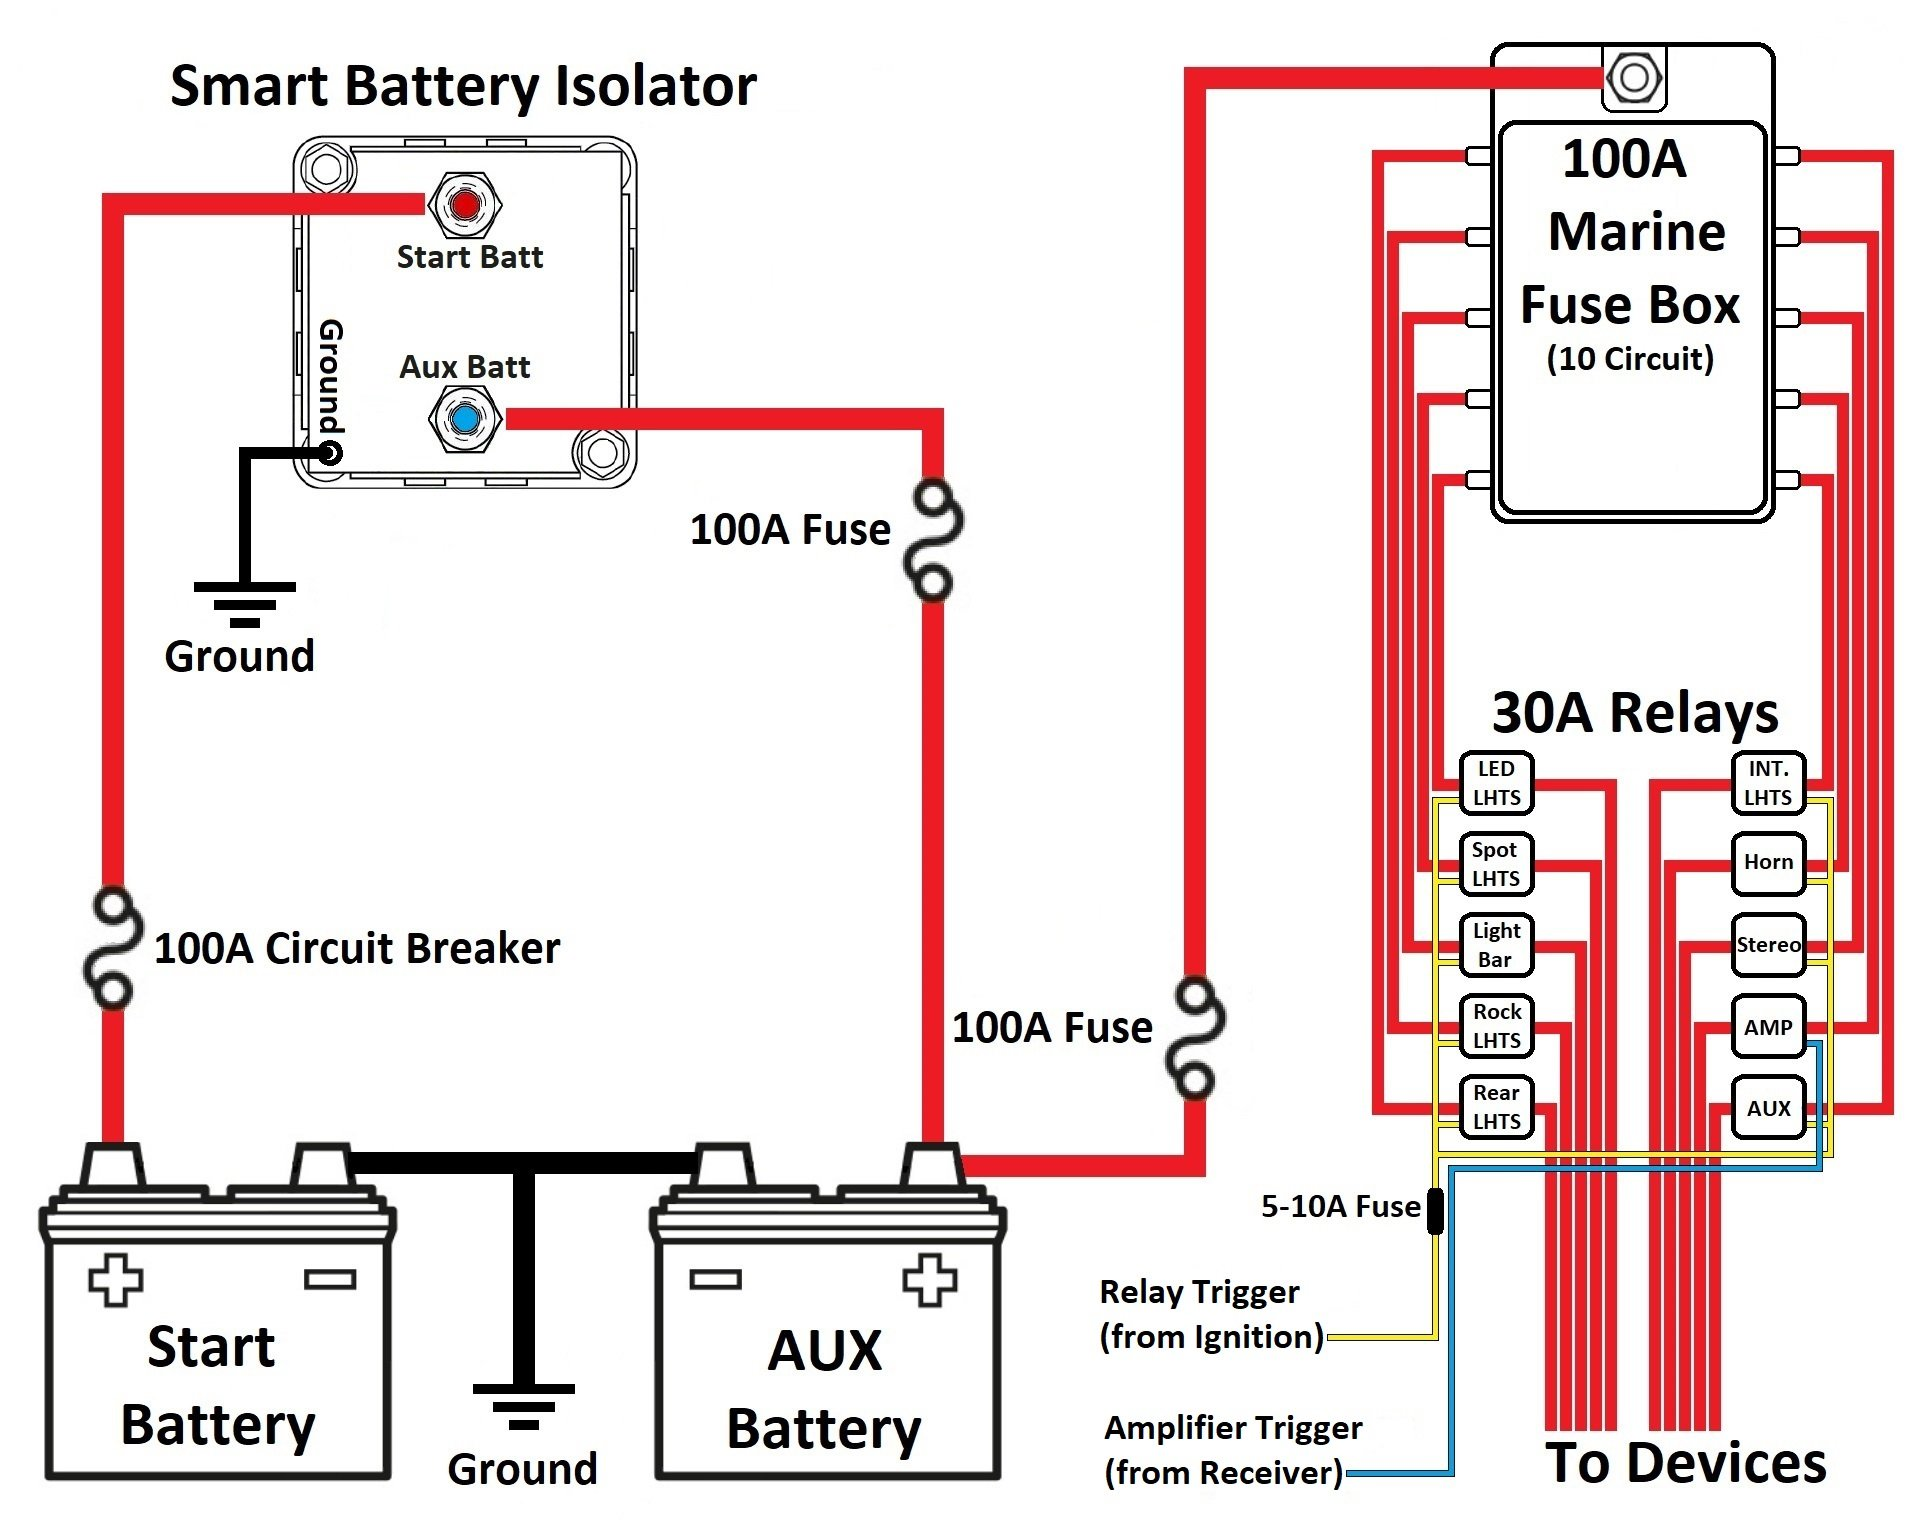 Smart battery isolator dual battery wiring diagram attached images pooptronica